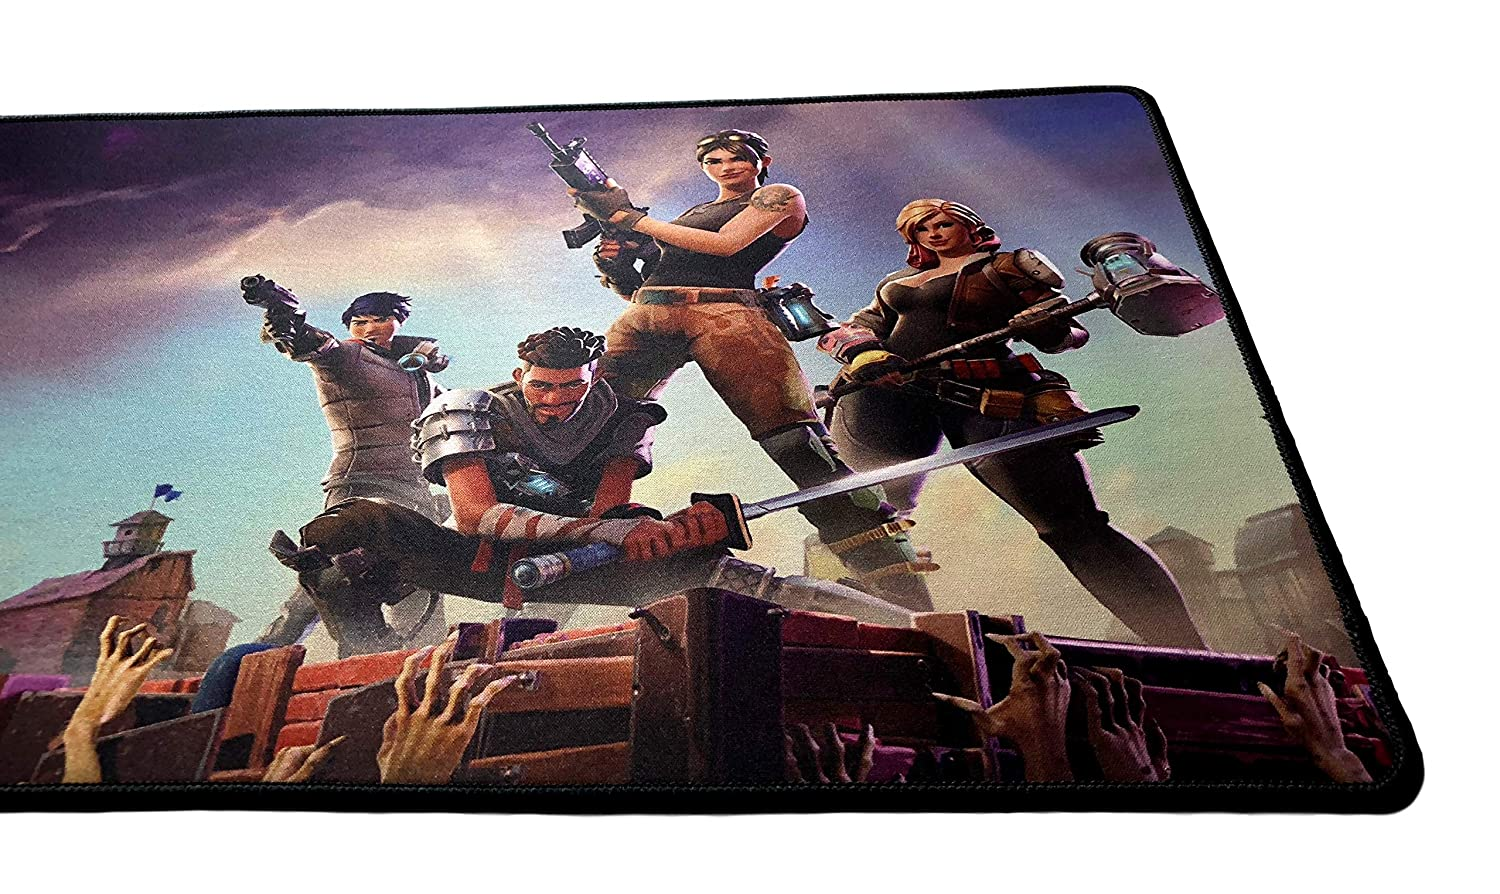 Fortnite Extended Size Custom Professional Gaming Mouse Pad - Anti Slip  Rubber Base - Stitched Edges - Large Desk Mat - 36